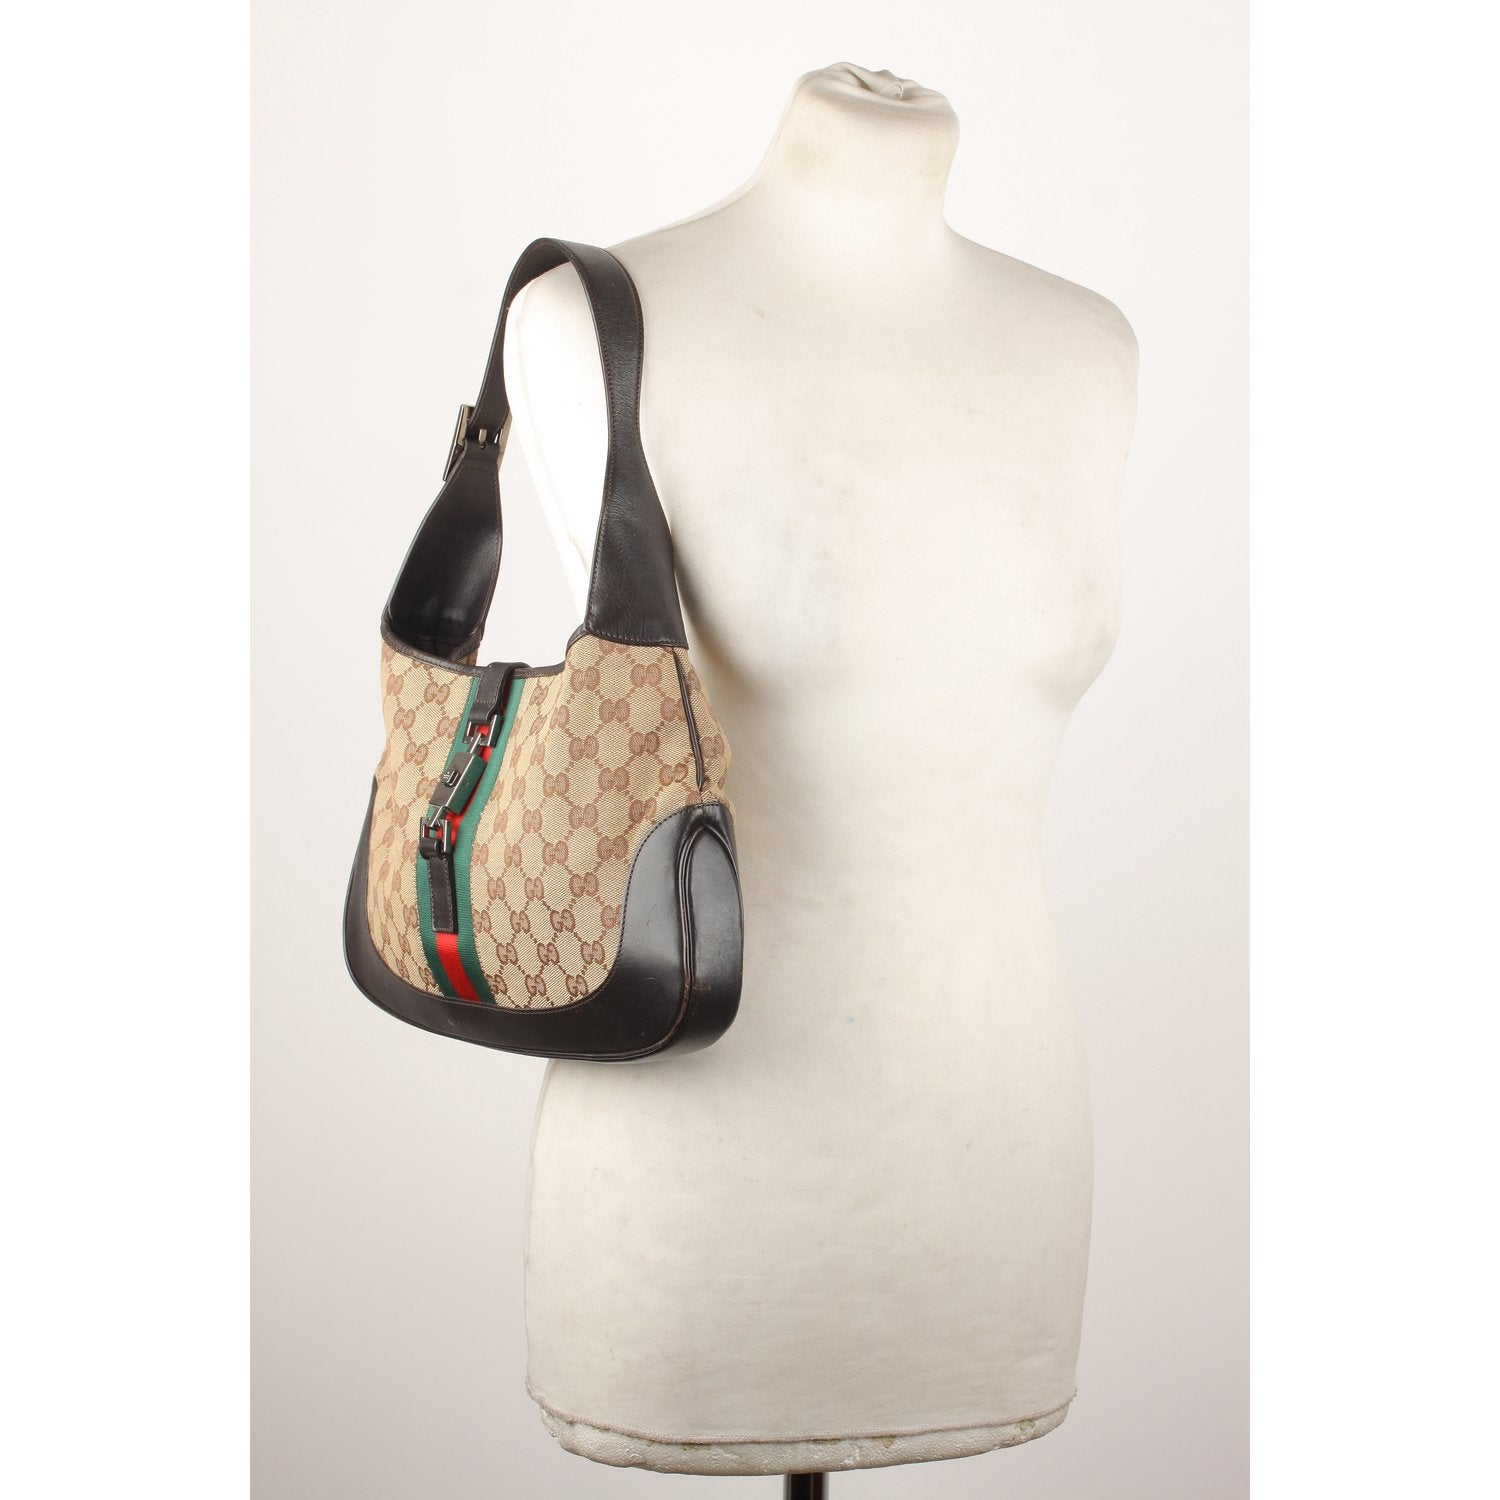 3737d310dd3 Enjoy Gucci Monogram Canvas Hobo Jackie O Bag at OPHERTYCIOCCI ...